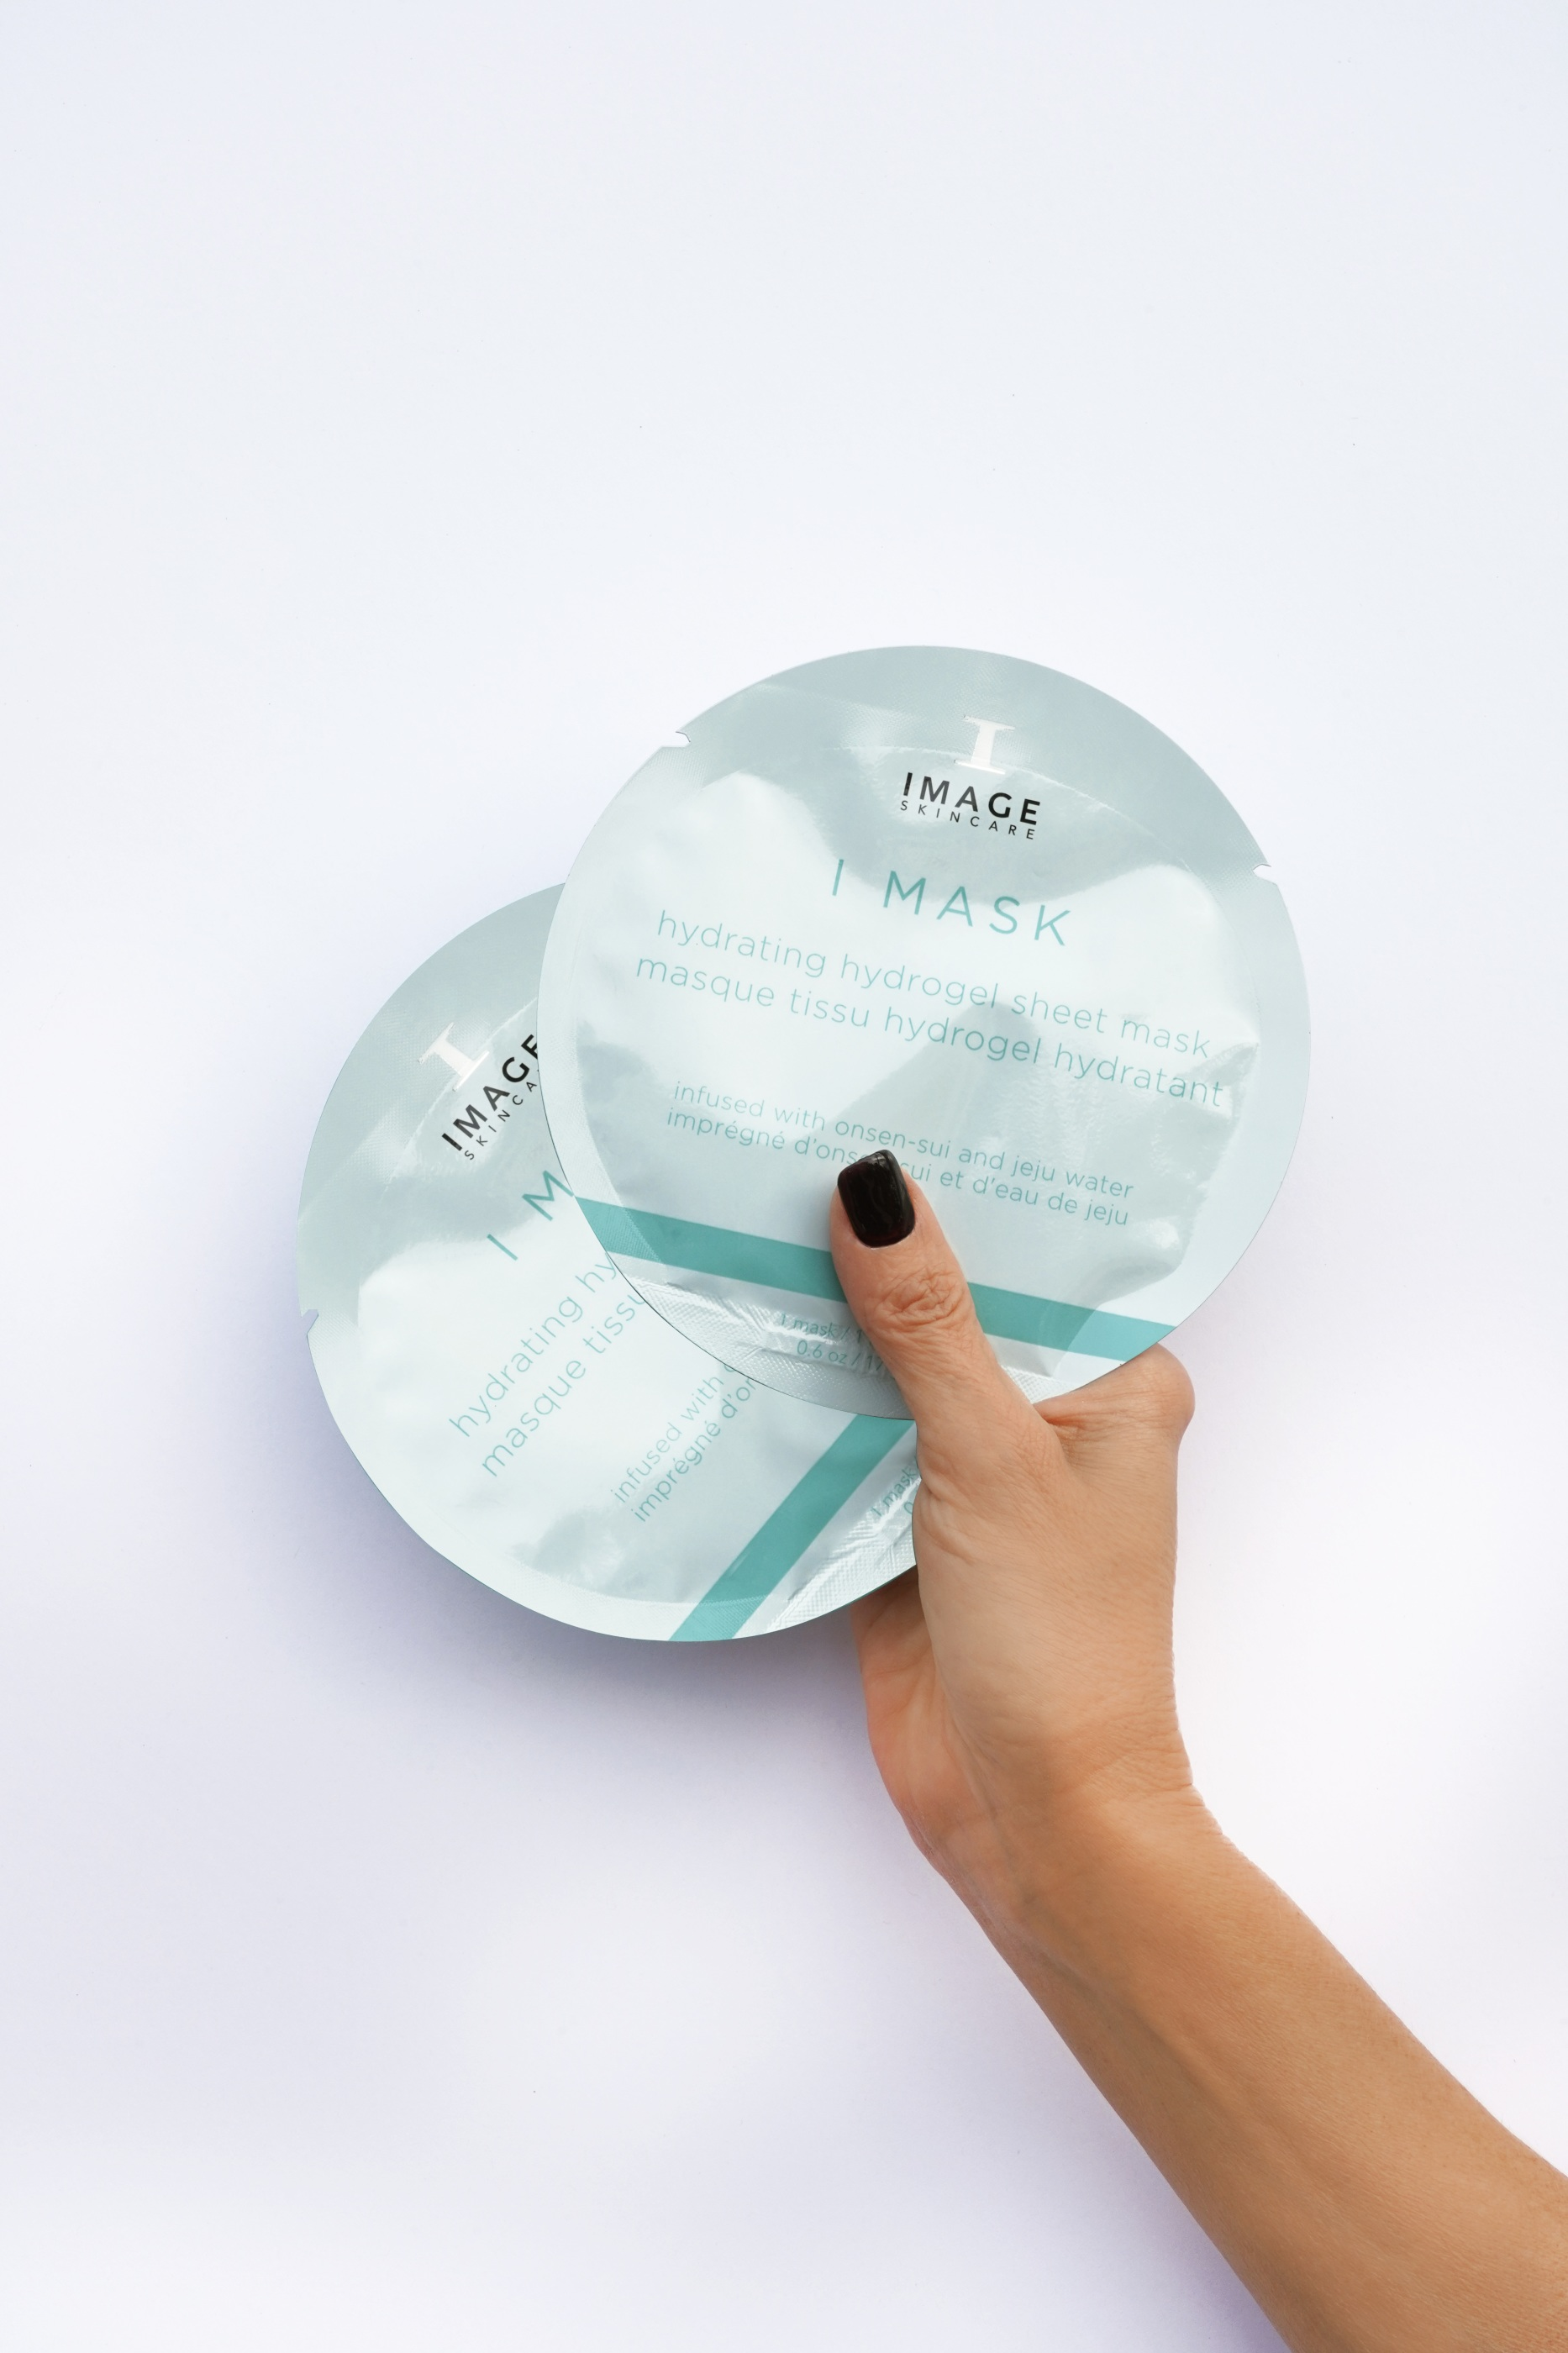 I_MASK_hydrating_hydrogel_sheet_mask_3